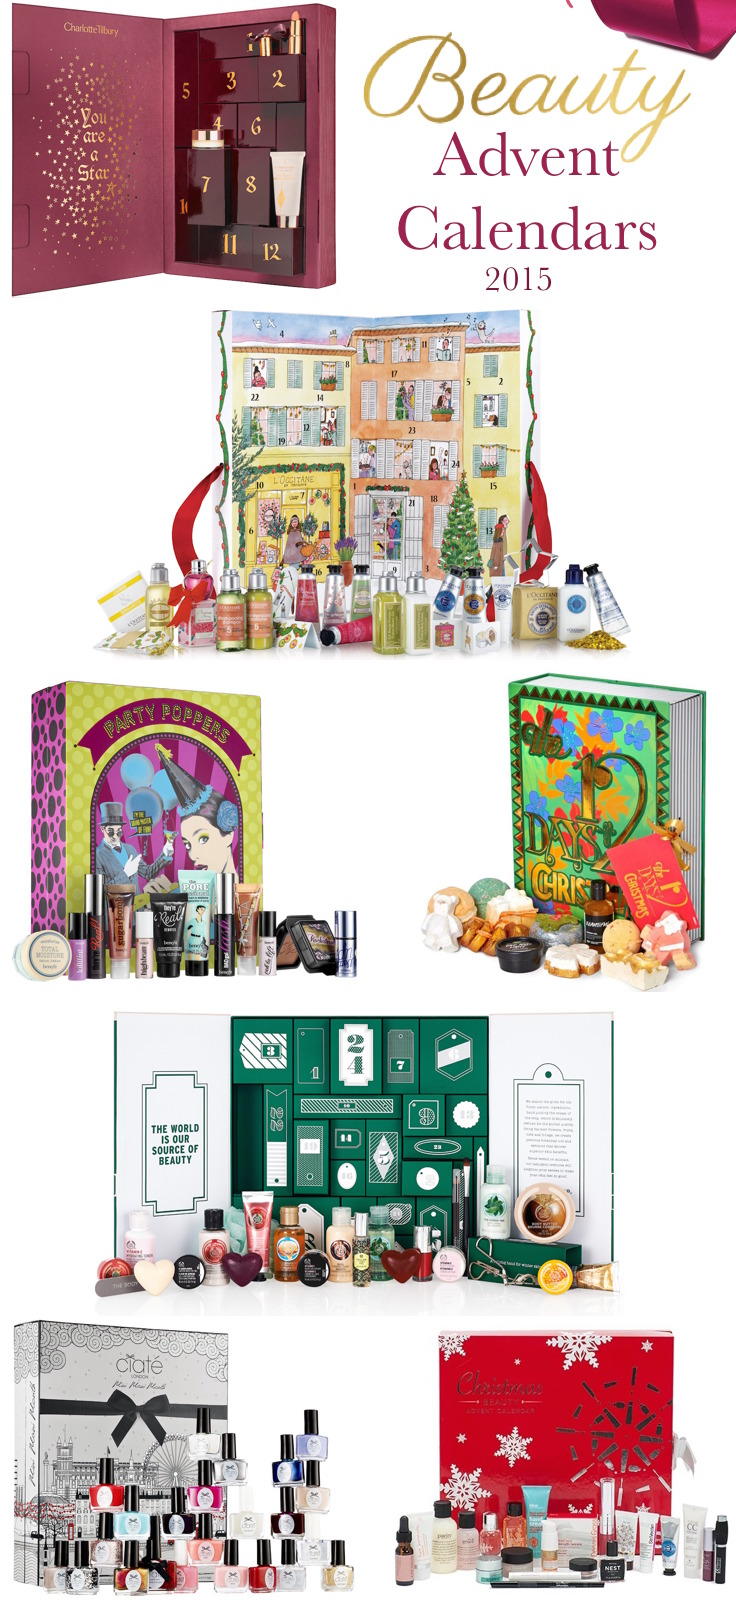 Here are the best beauty Advent calendars for 2015...bring on the beauty treats and make it Christmas every day!